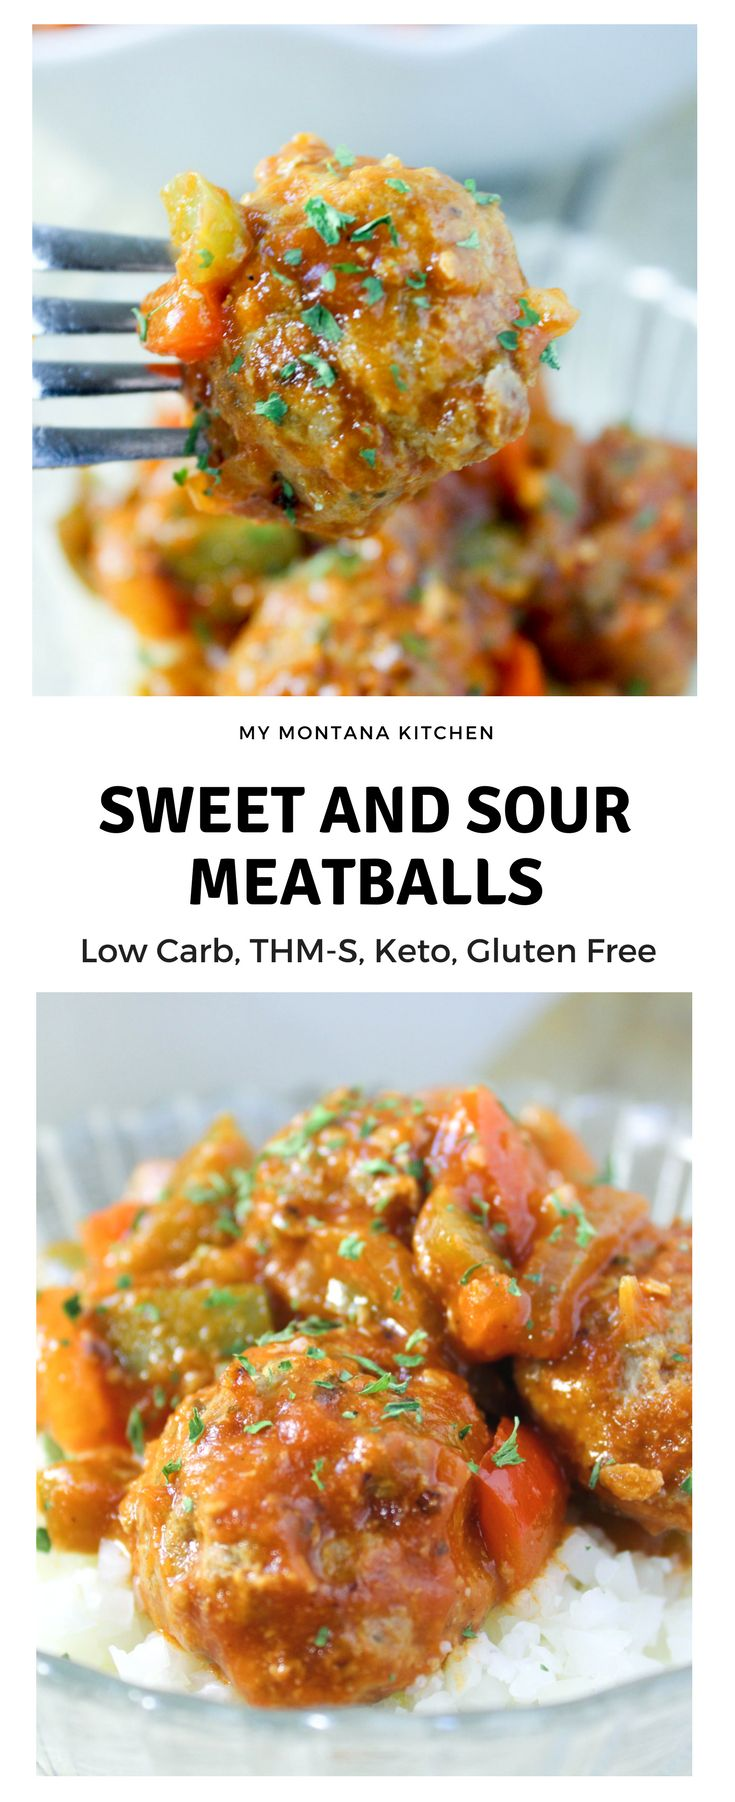 Sweet and Sour Meatballs (THM-S, Low Carb) #trimhealthymama #thm #thms #lowcarb #keto #sweetandsour #meatballs #glutenfree #sugarfree #dairyfree